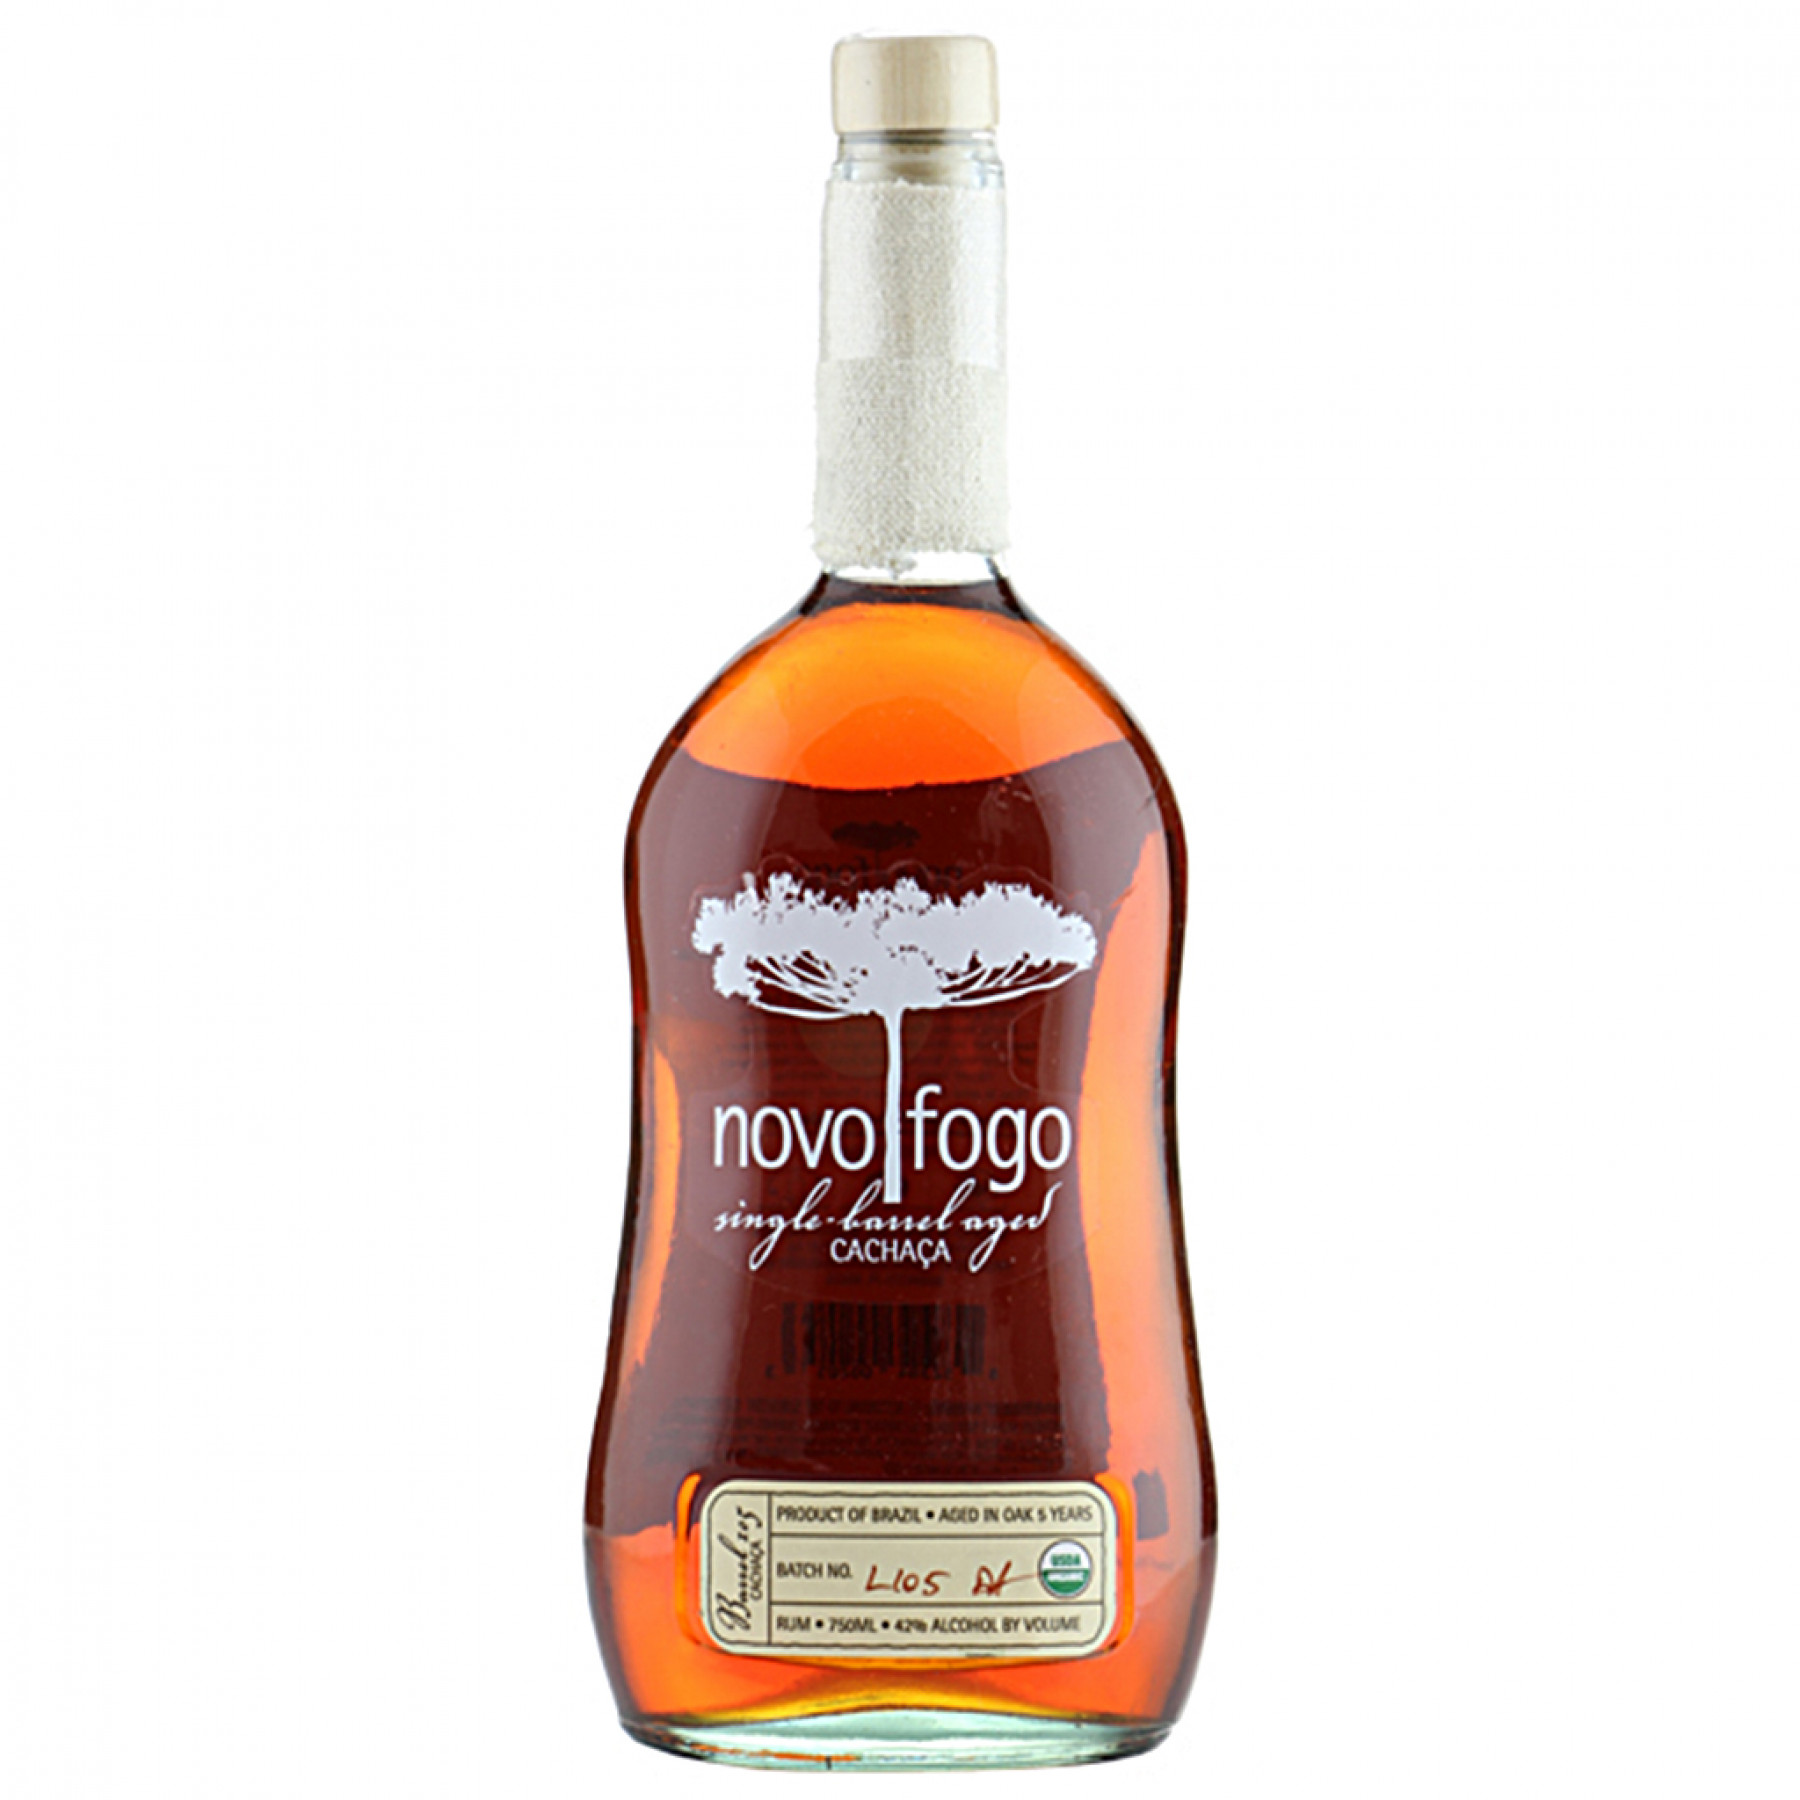 NV Novo Fogo (Single-Barrel #137) 7 year Cachaca 750mL